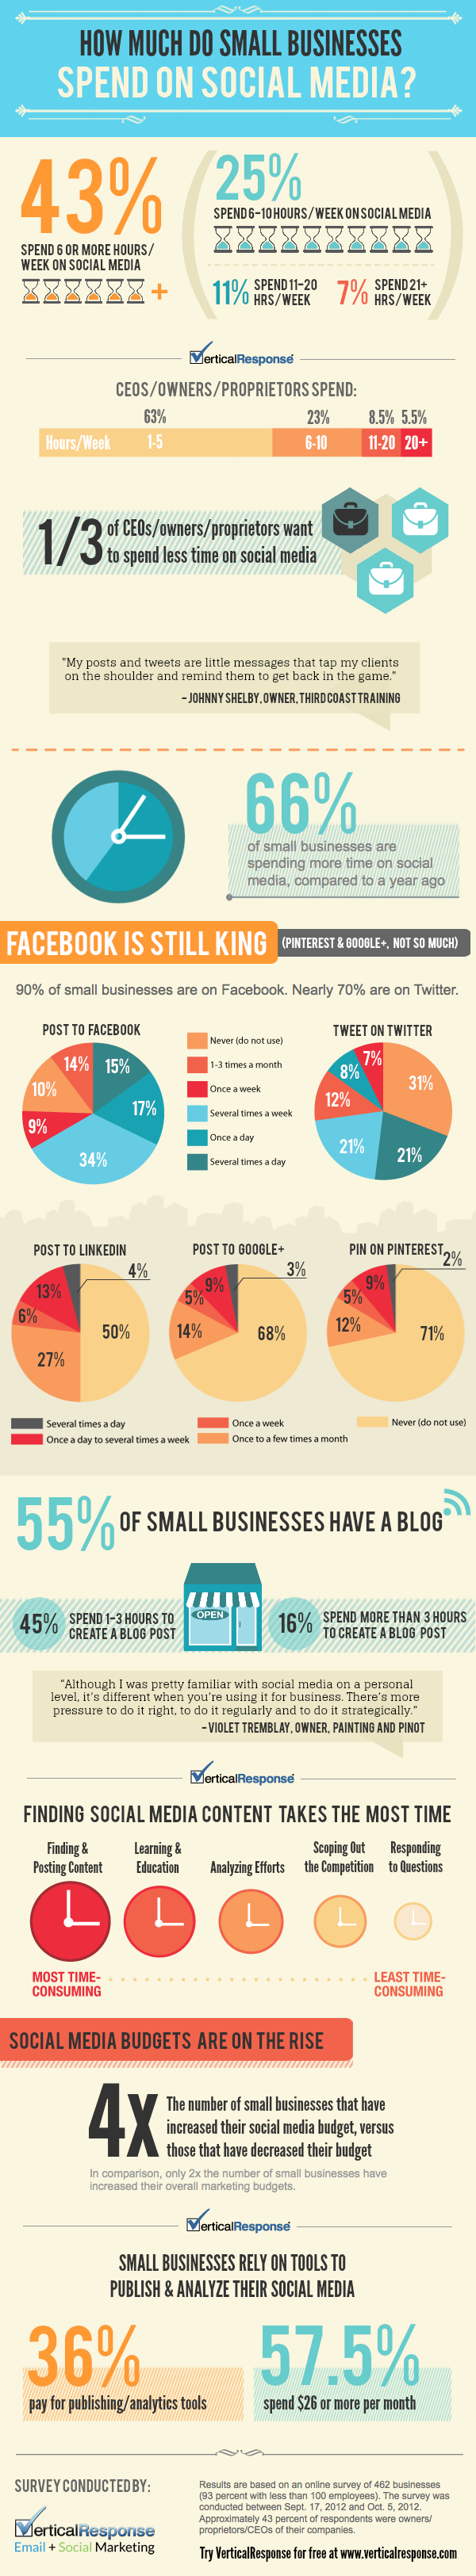 how much do businesses spend on social media